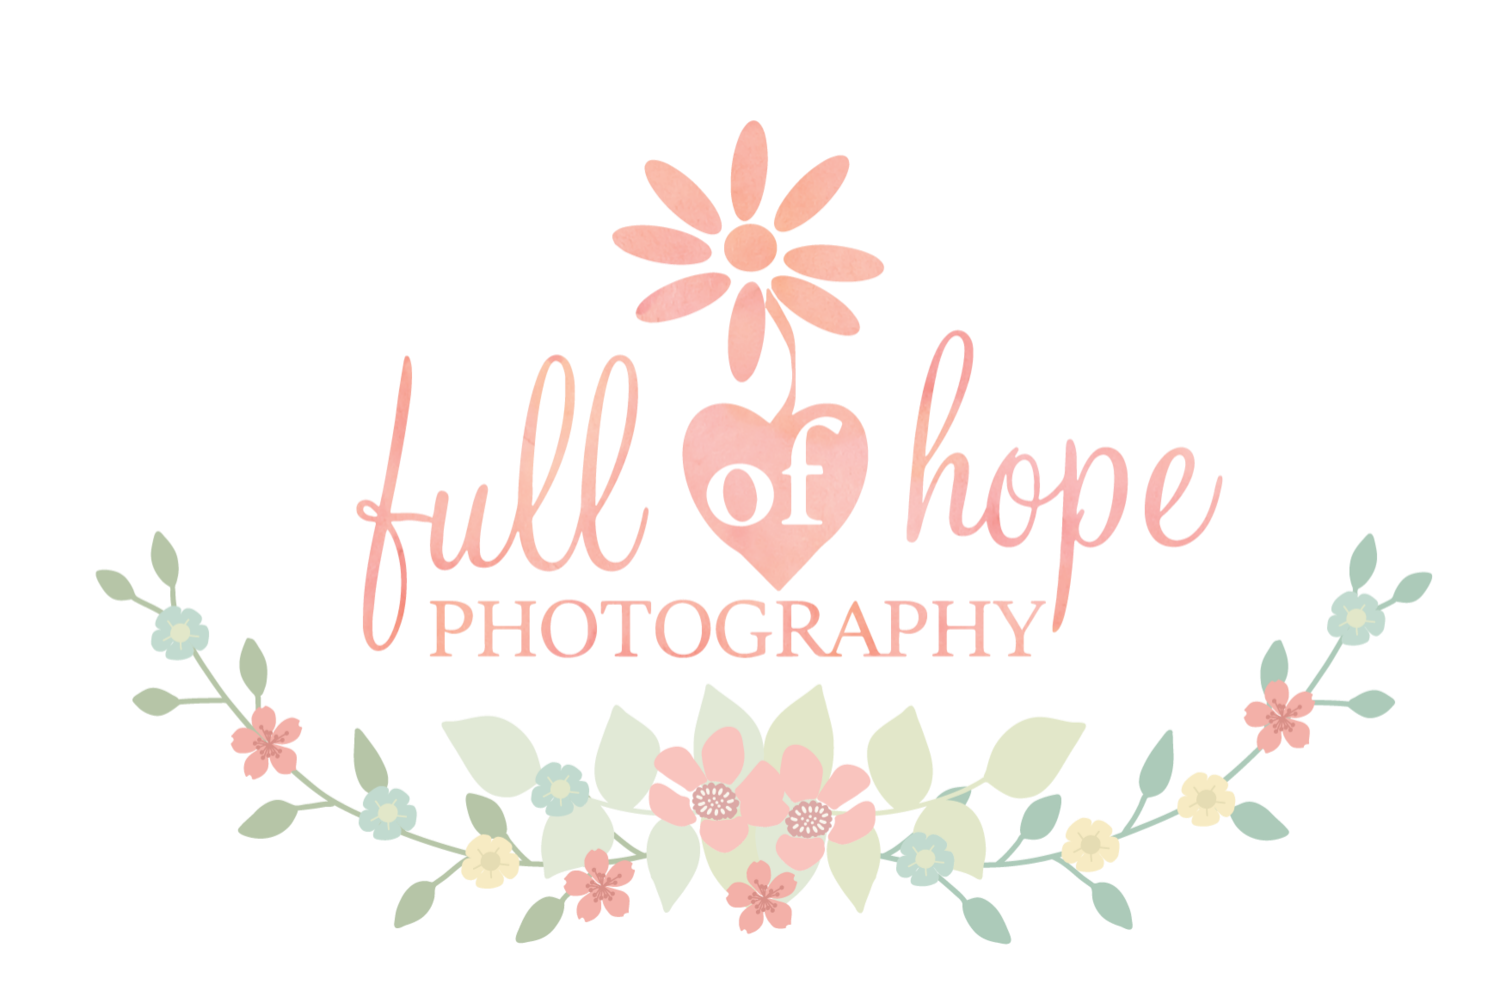 Full of Hope Photography